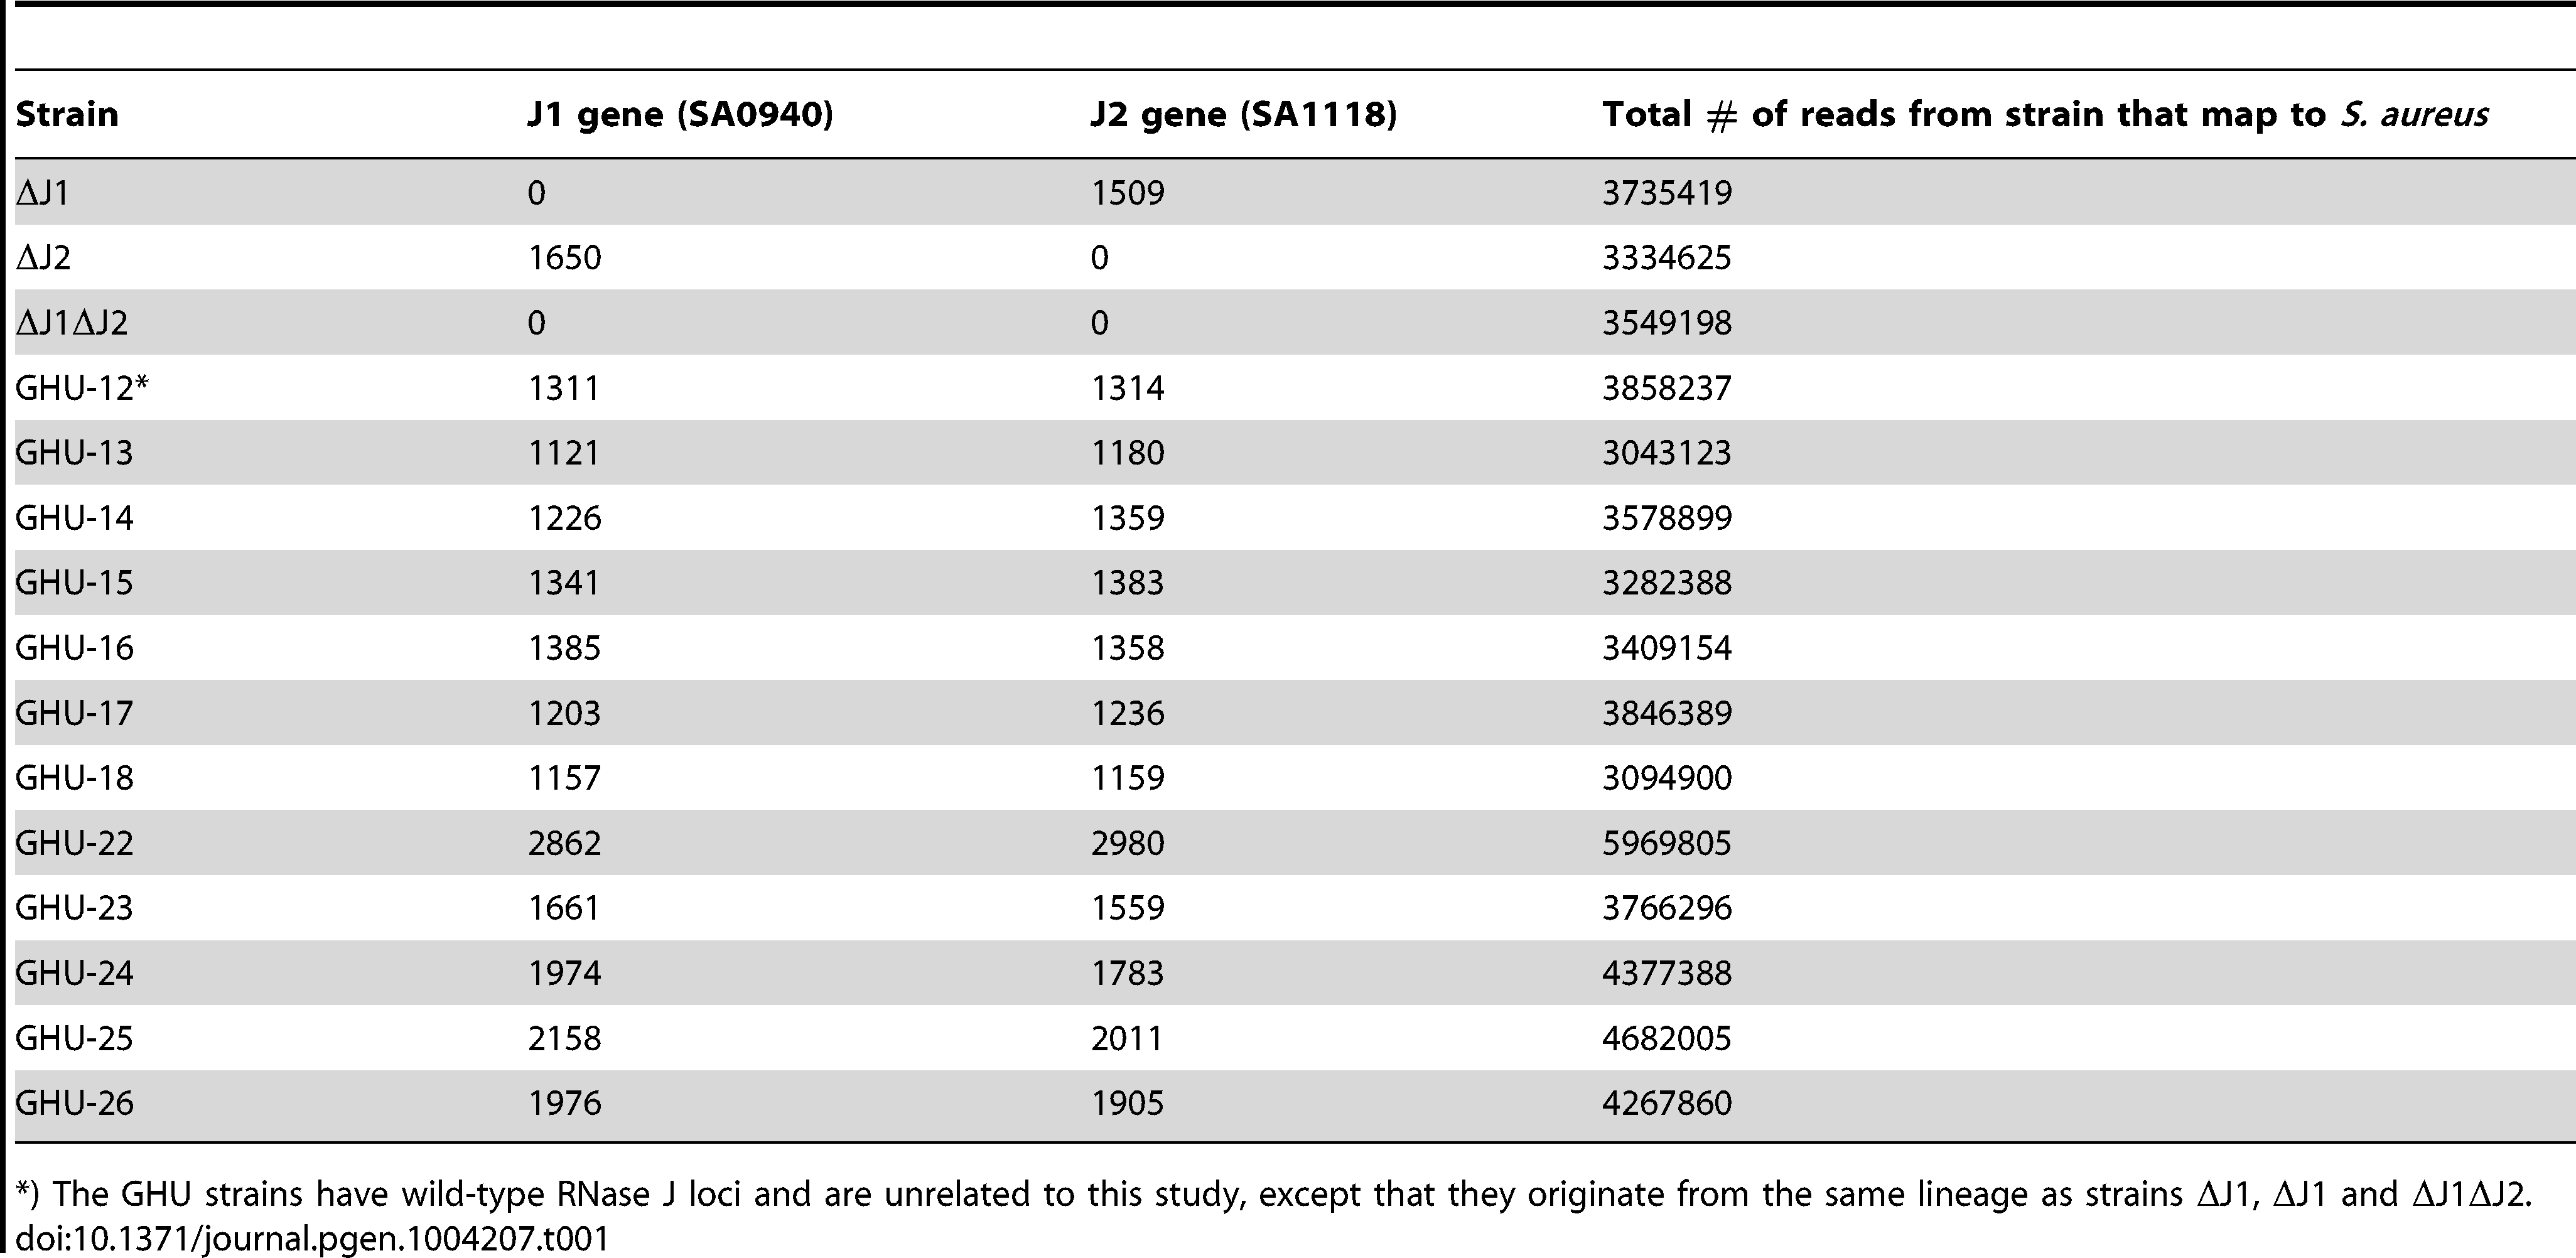 Reads mapping to the RNase J1 and RNase J2 genes in the RNase J deletion mutants and in unrelated strains (GHU-12 to 26).